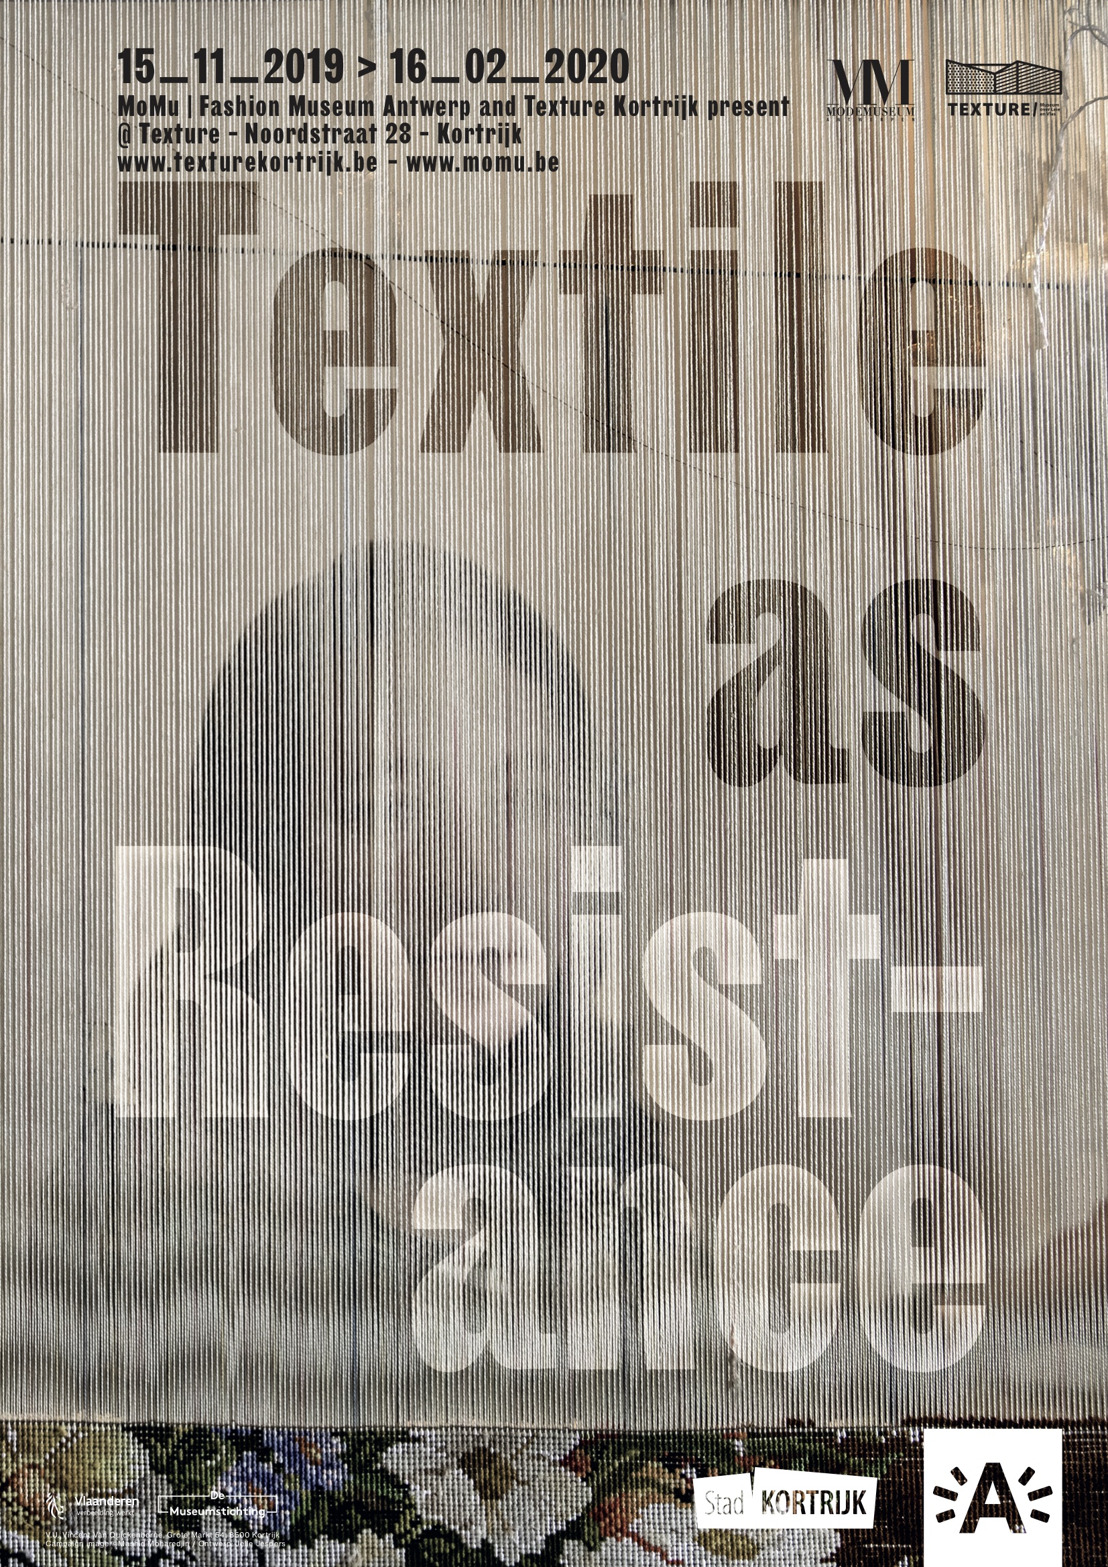 MoMu and Texture Kortrijk present 'Textile as Resistance'